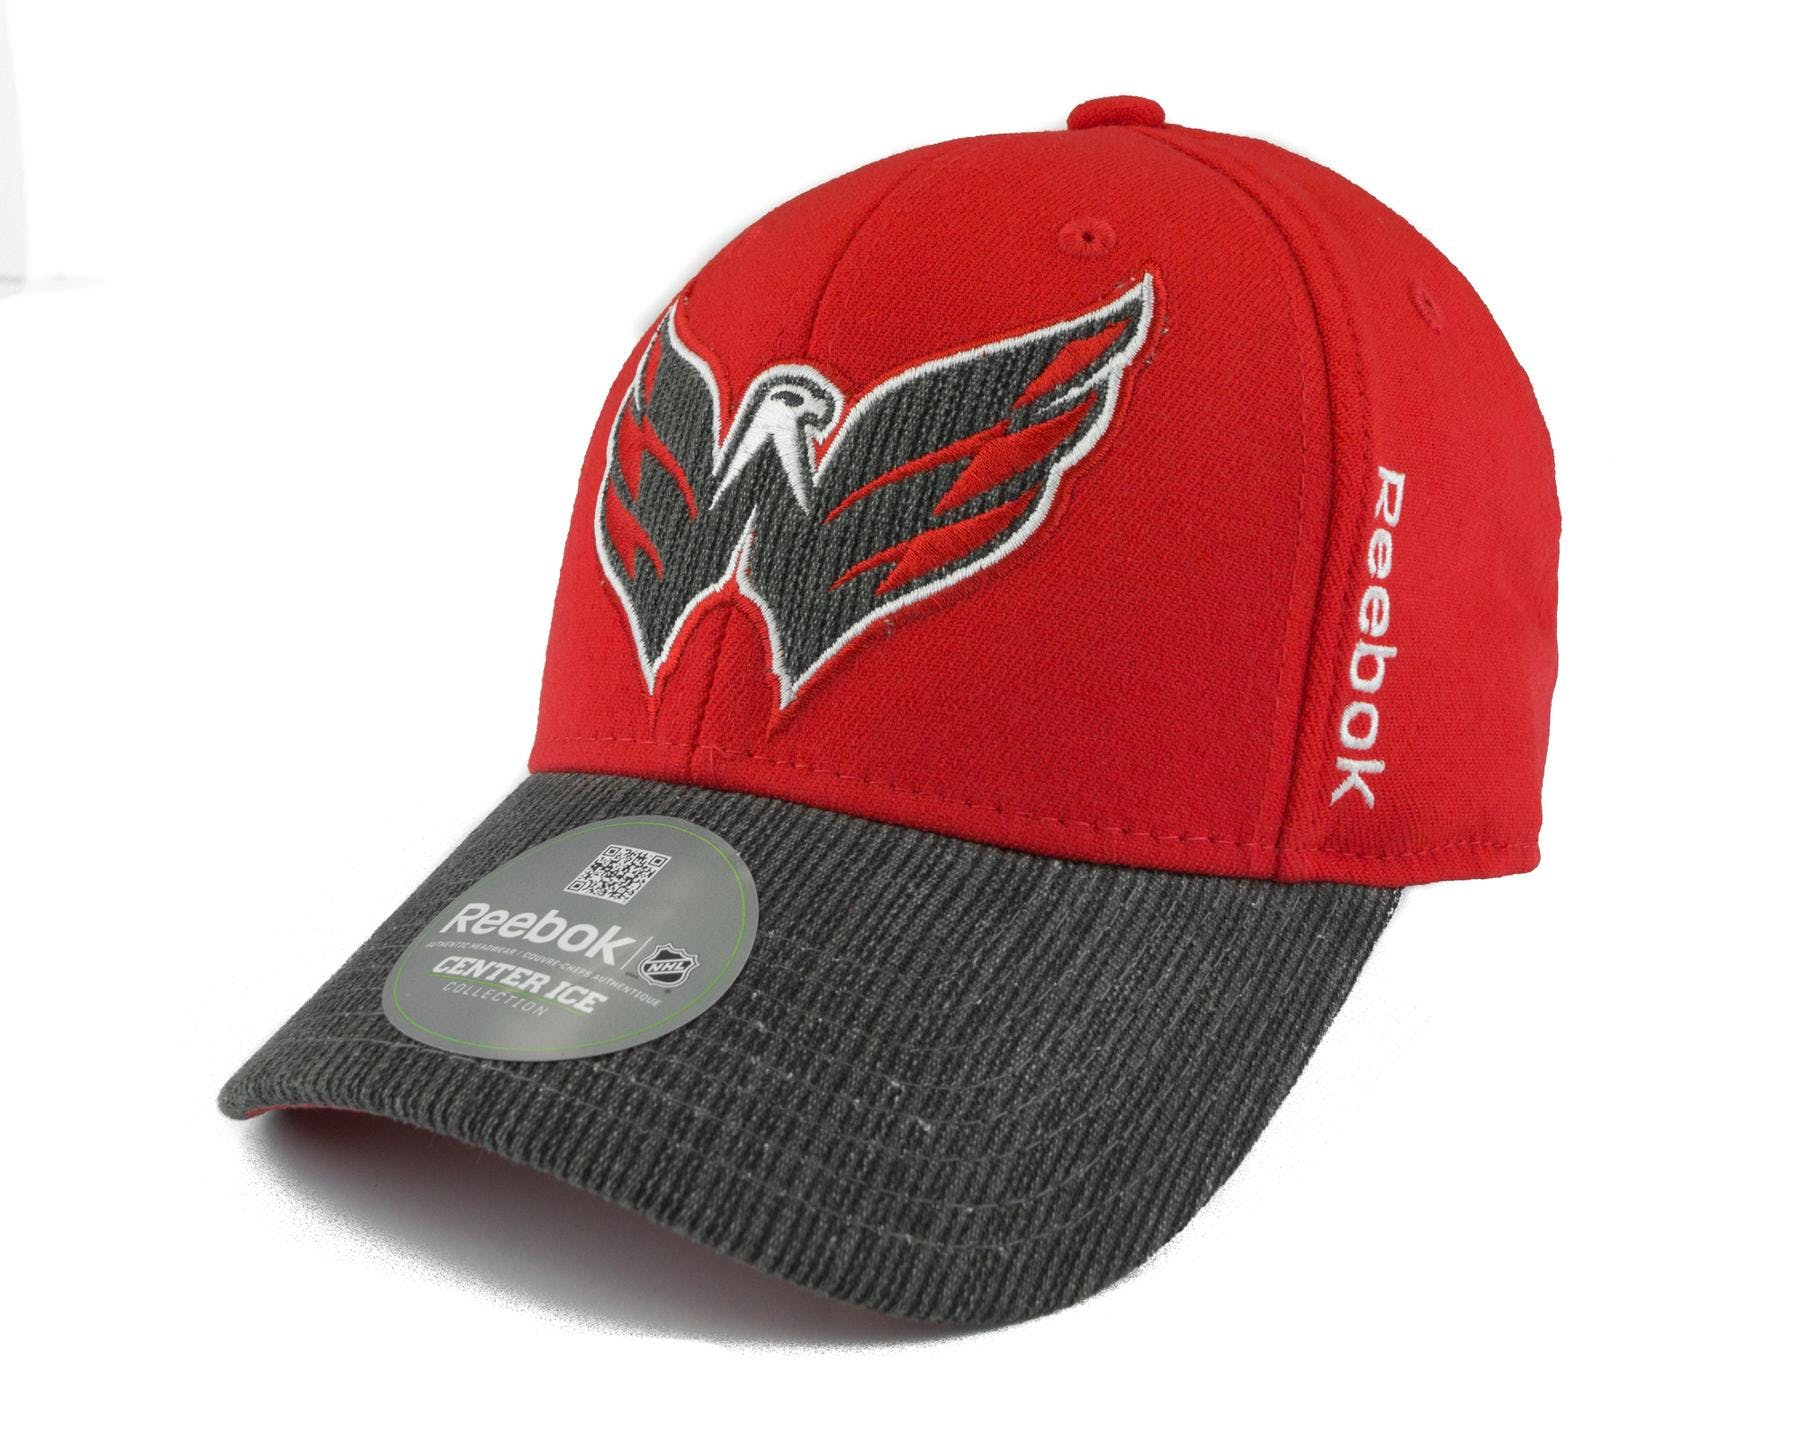 b77de7f730b Washington Capitals Reebok Red Travel and Training Fitted Hat